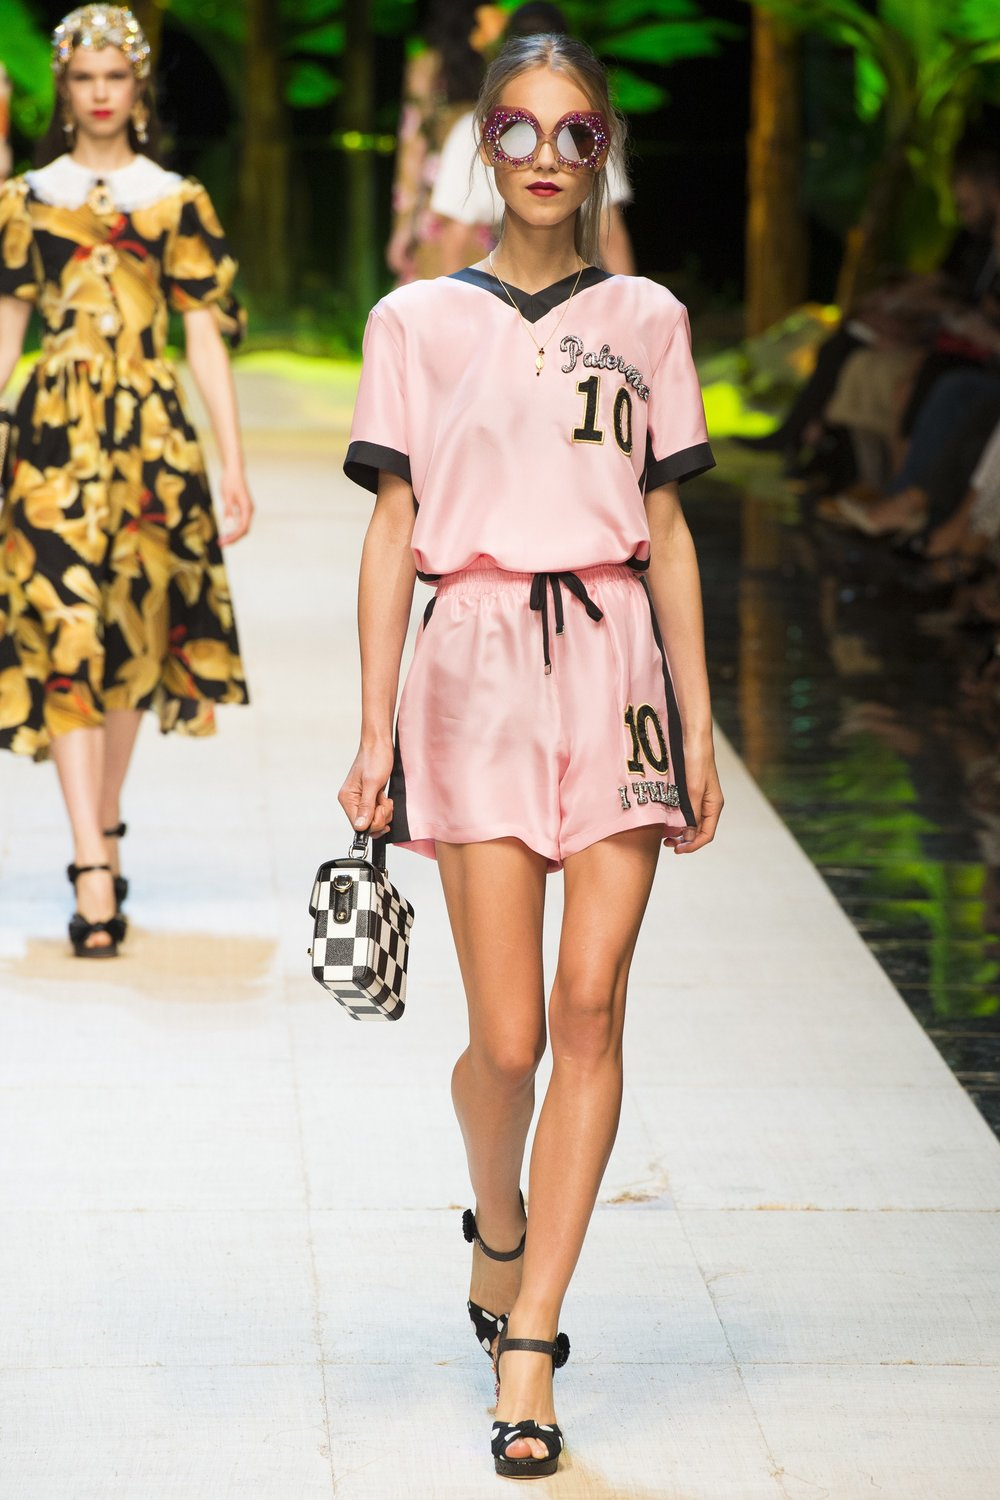 dolce and gabanna ready to wear 13.jpg